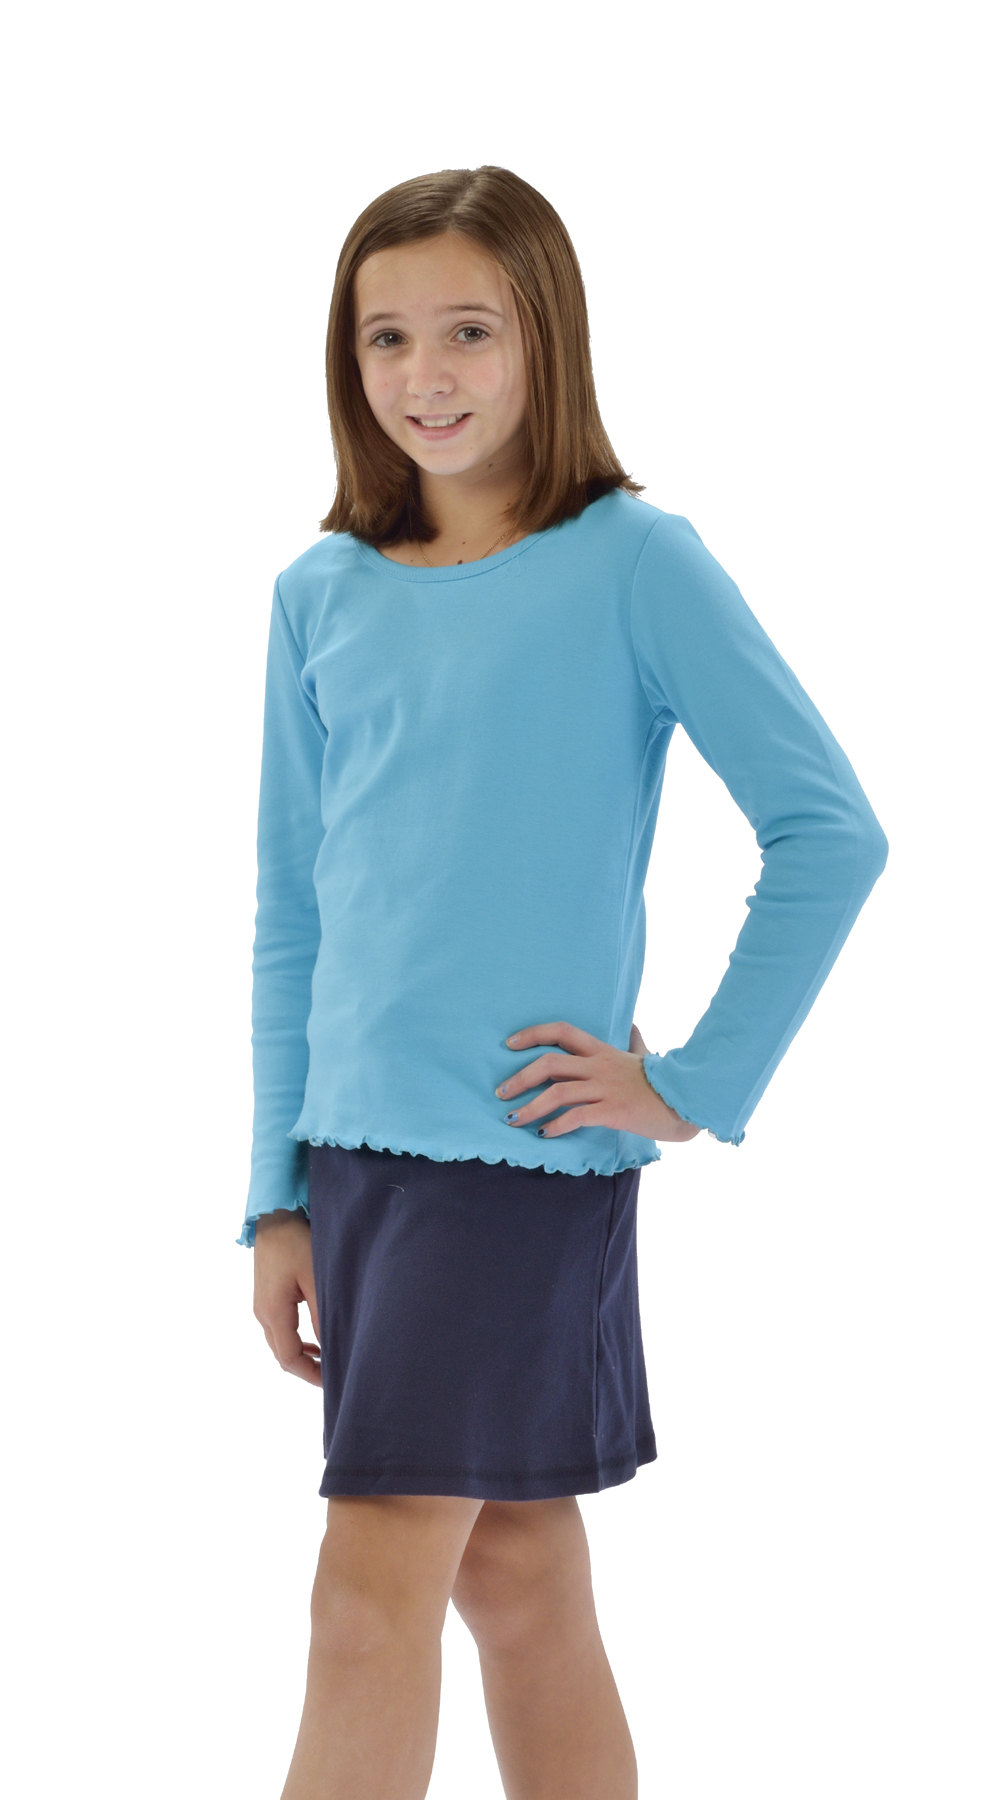 Monag 400014 - Interlock Lettuce Long Sleeve Girly Tee